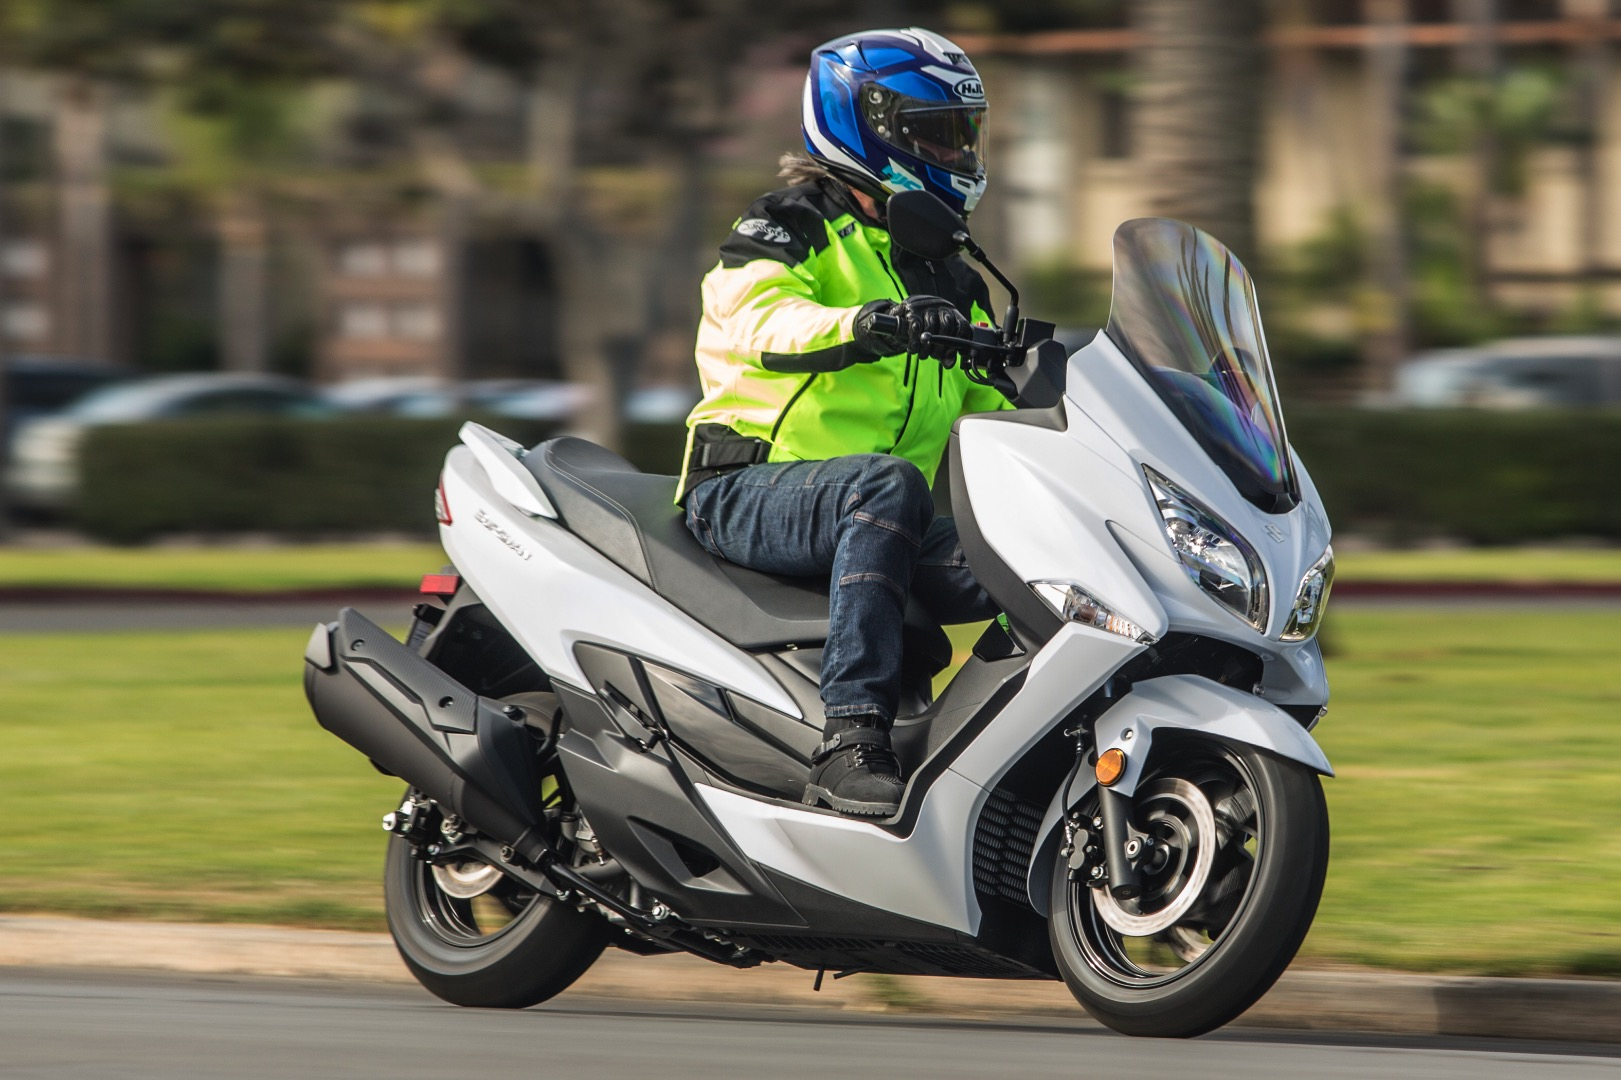 2018 Suzuki Burgman 400 scooter top speed